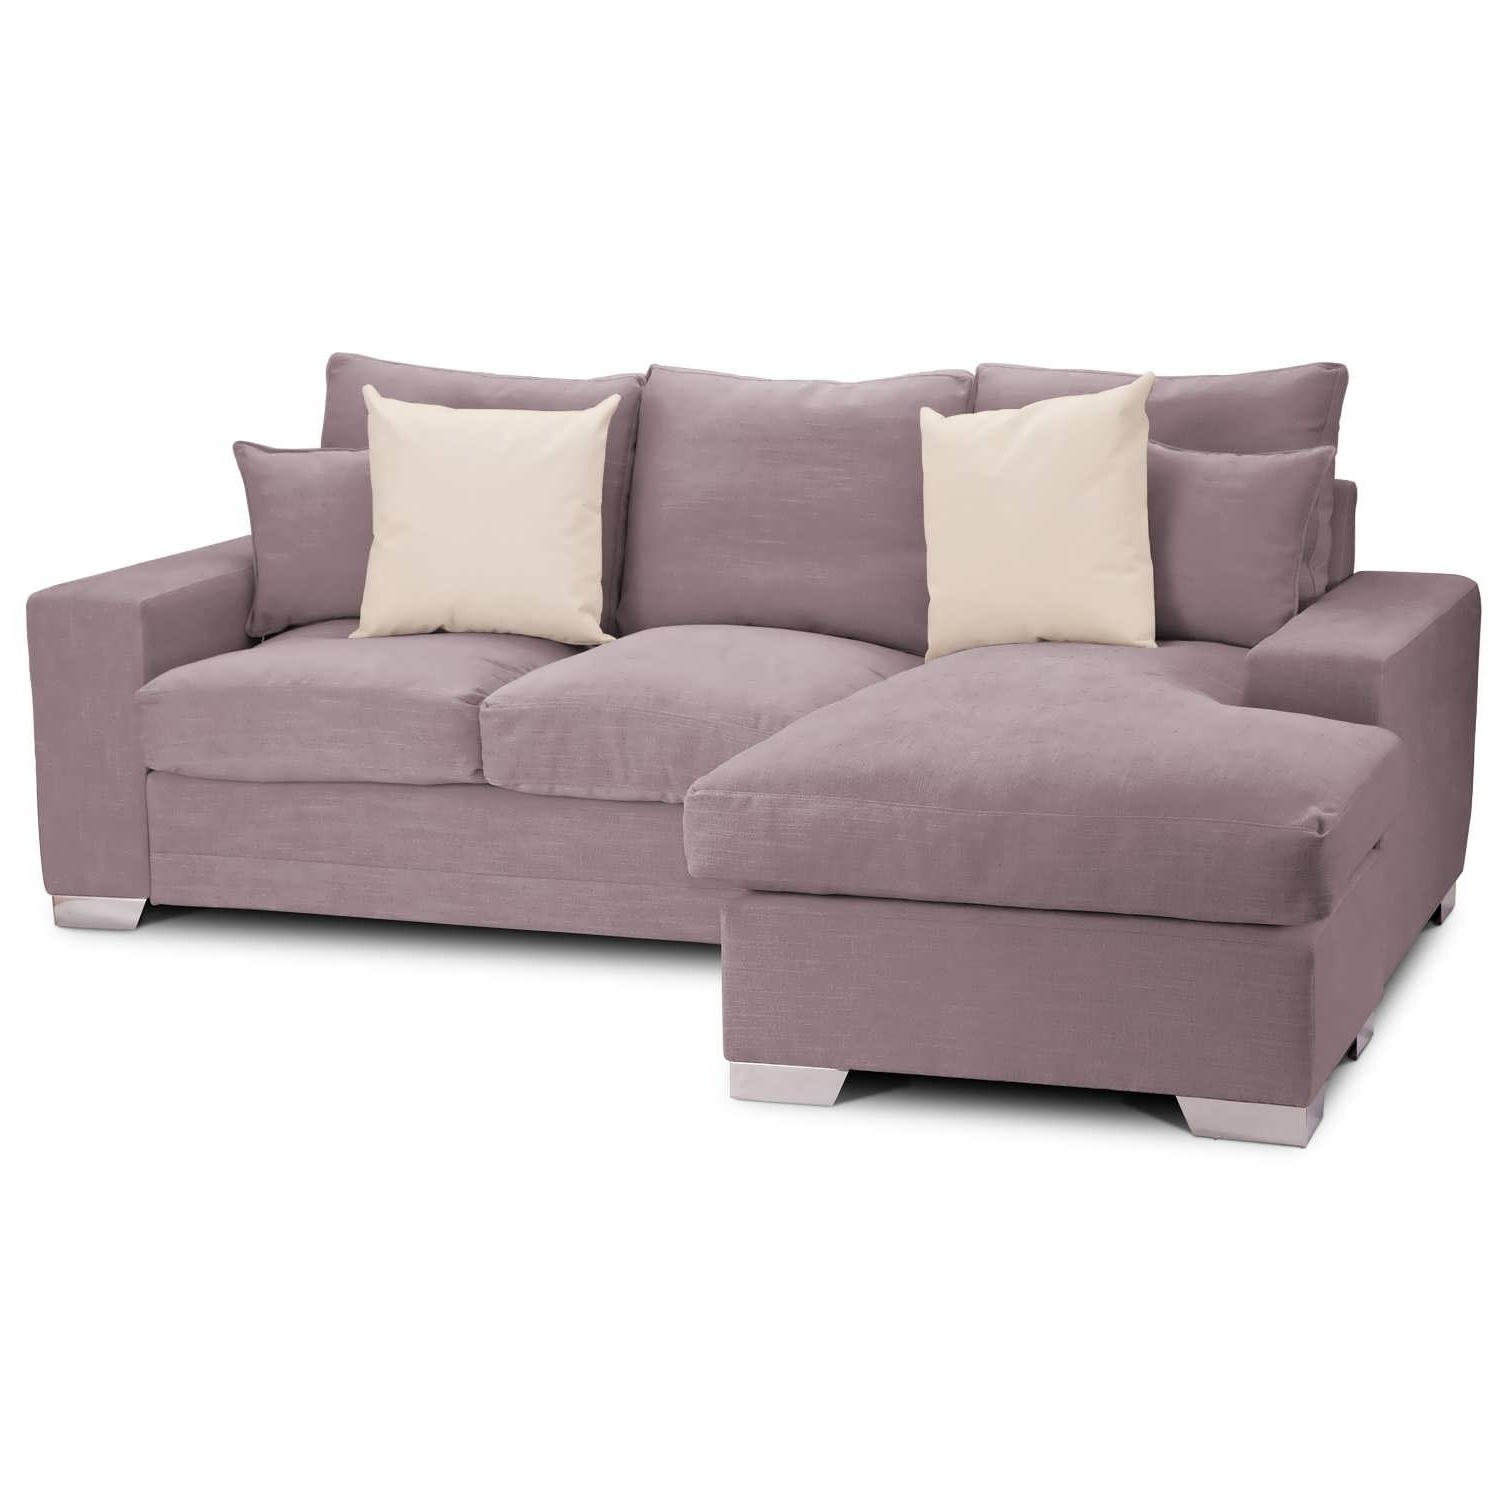 Most Up To Date Chaise Couches Inside Sofa : Gray Sofa Set Sectional Sofas Small Chaise Sofa Gray (View 9 of 15)